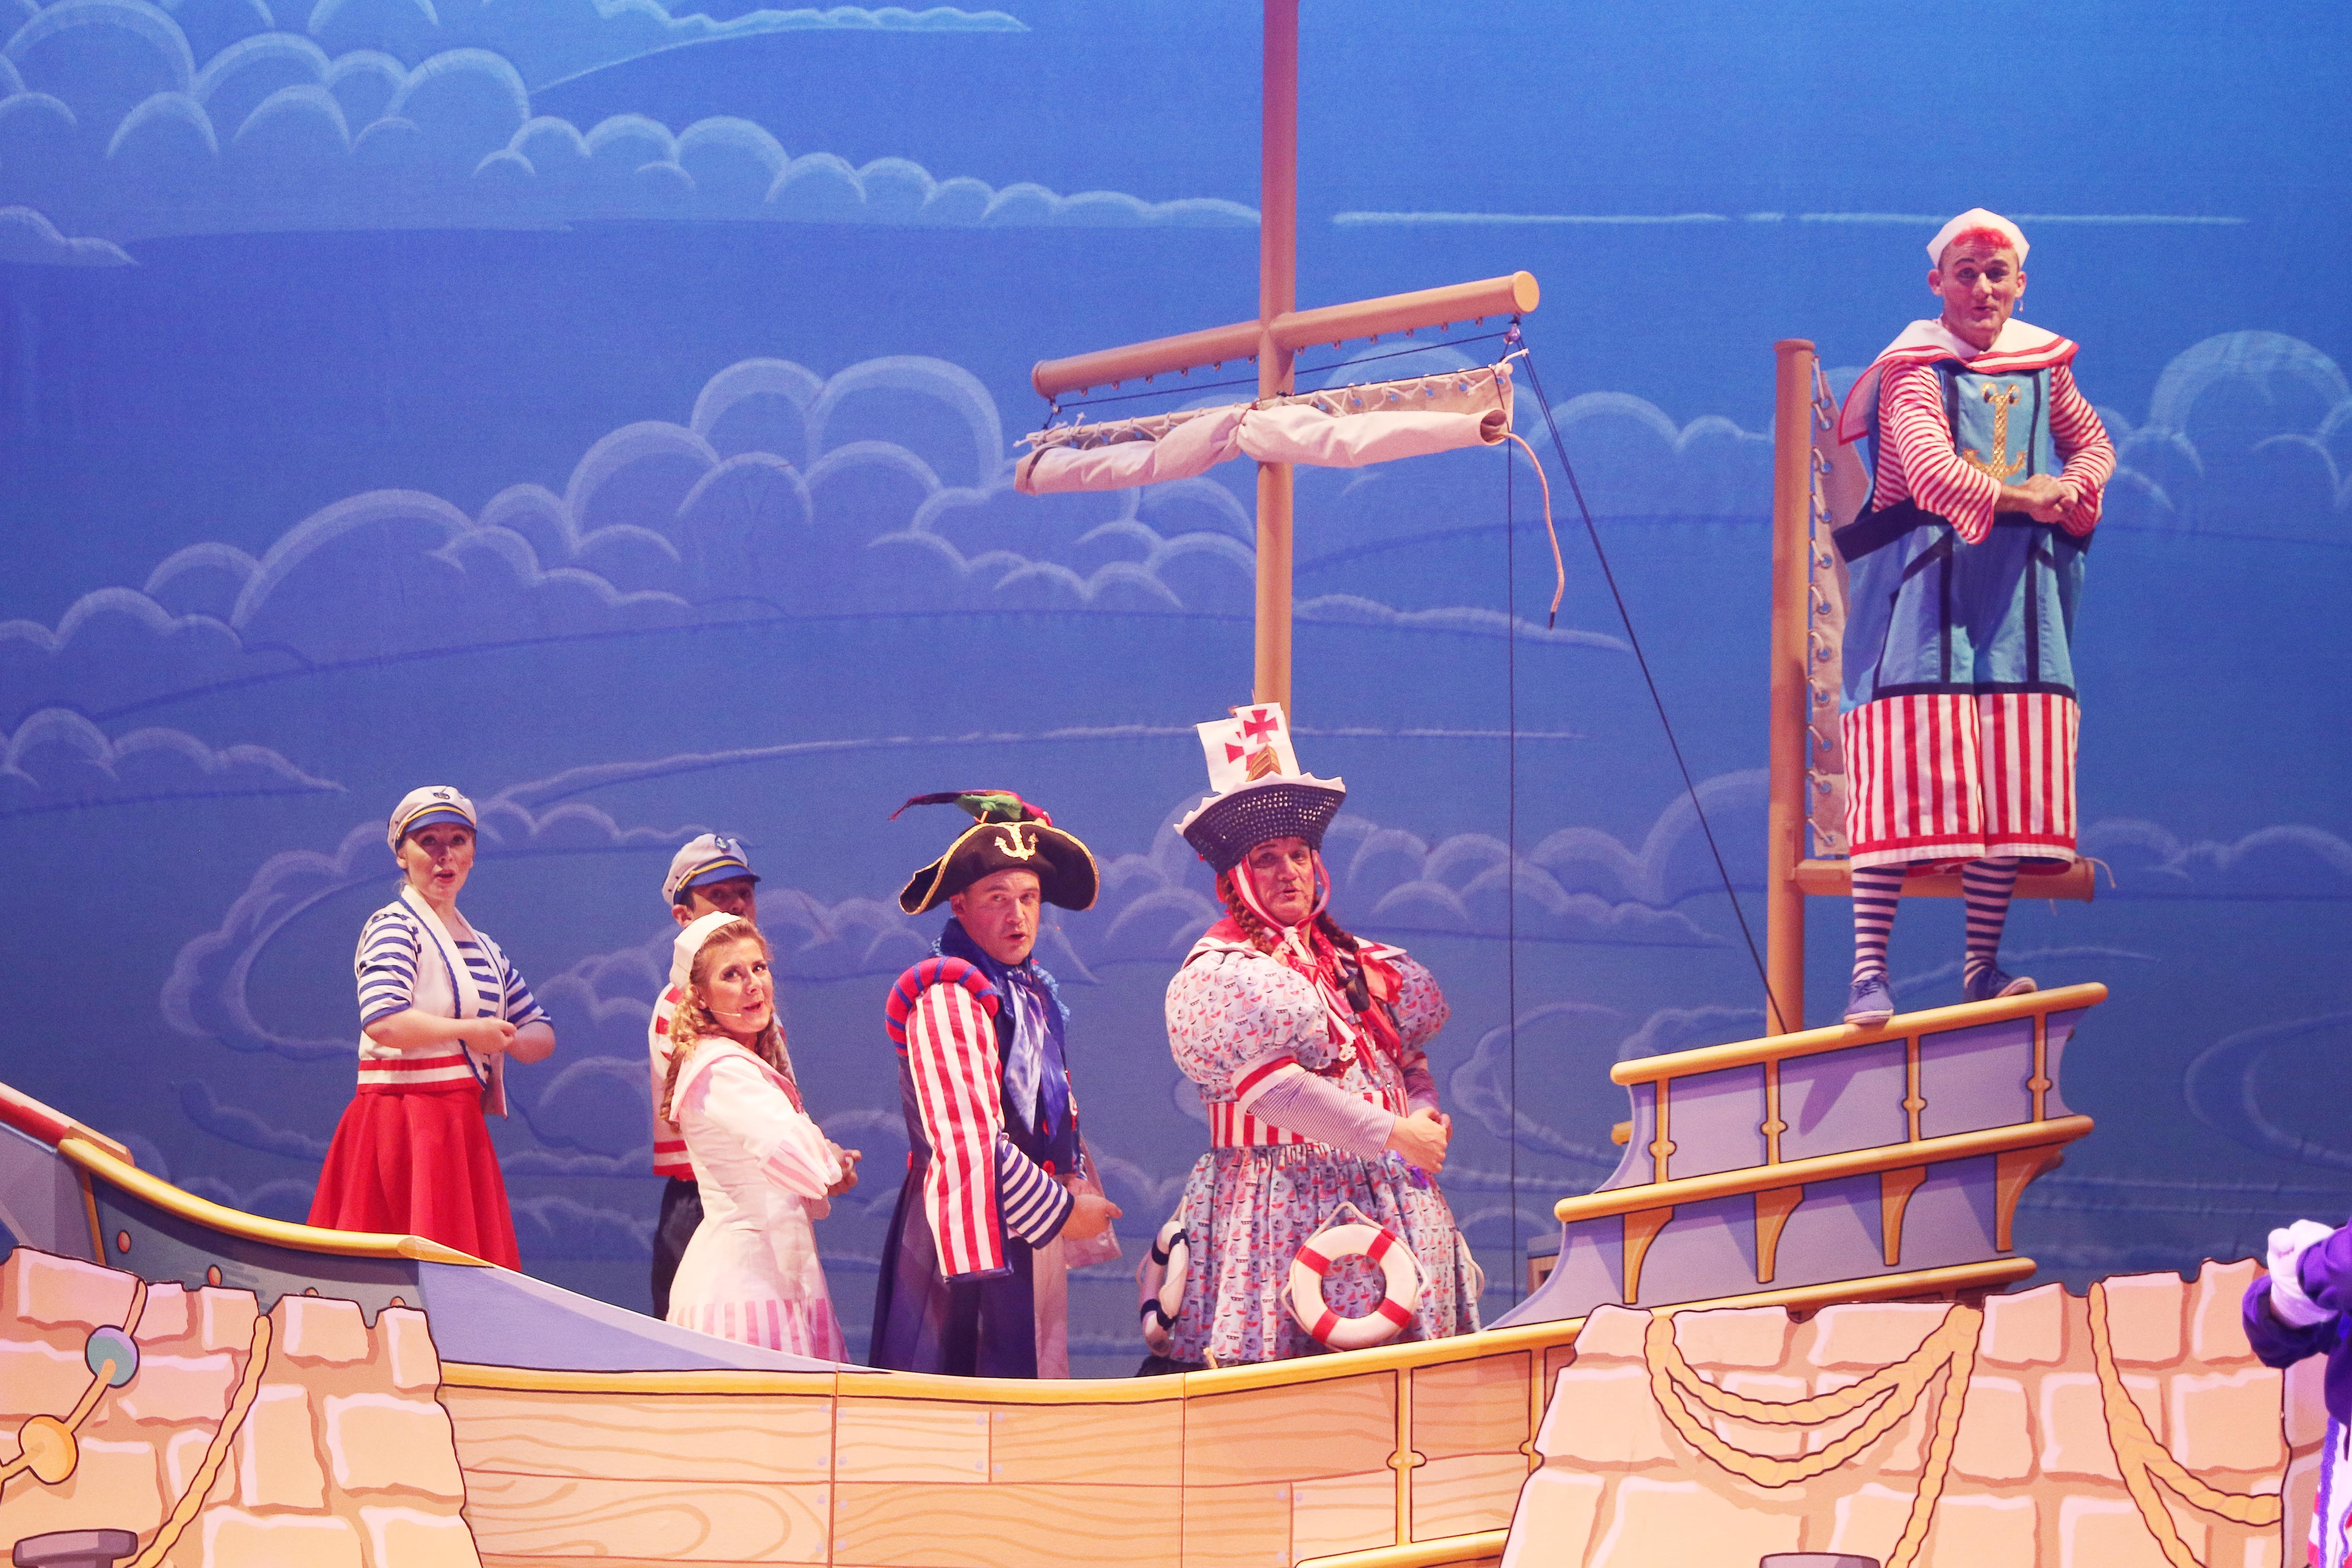 All at sea: Some of the cast in nautical mode.